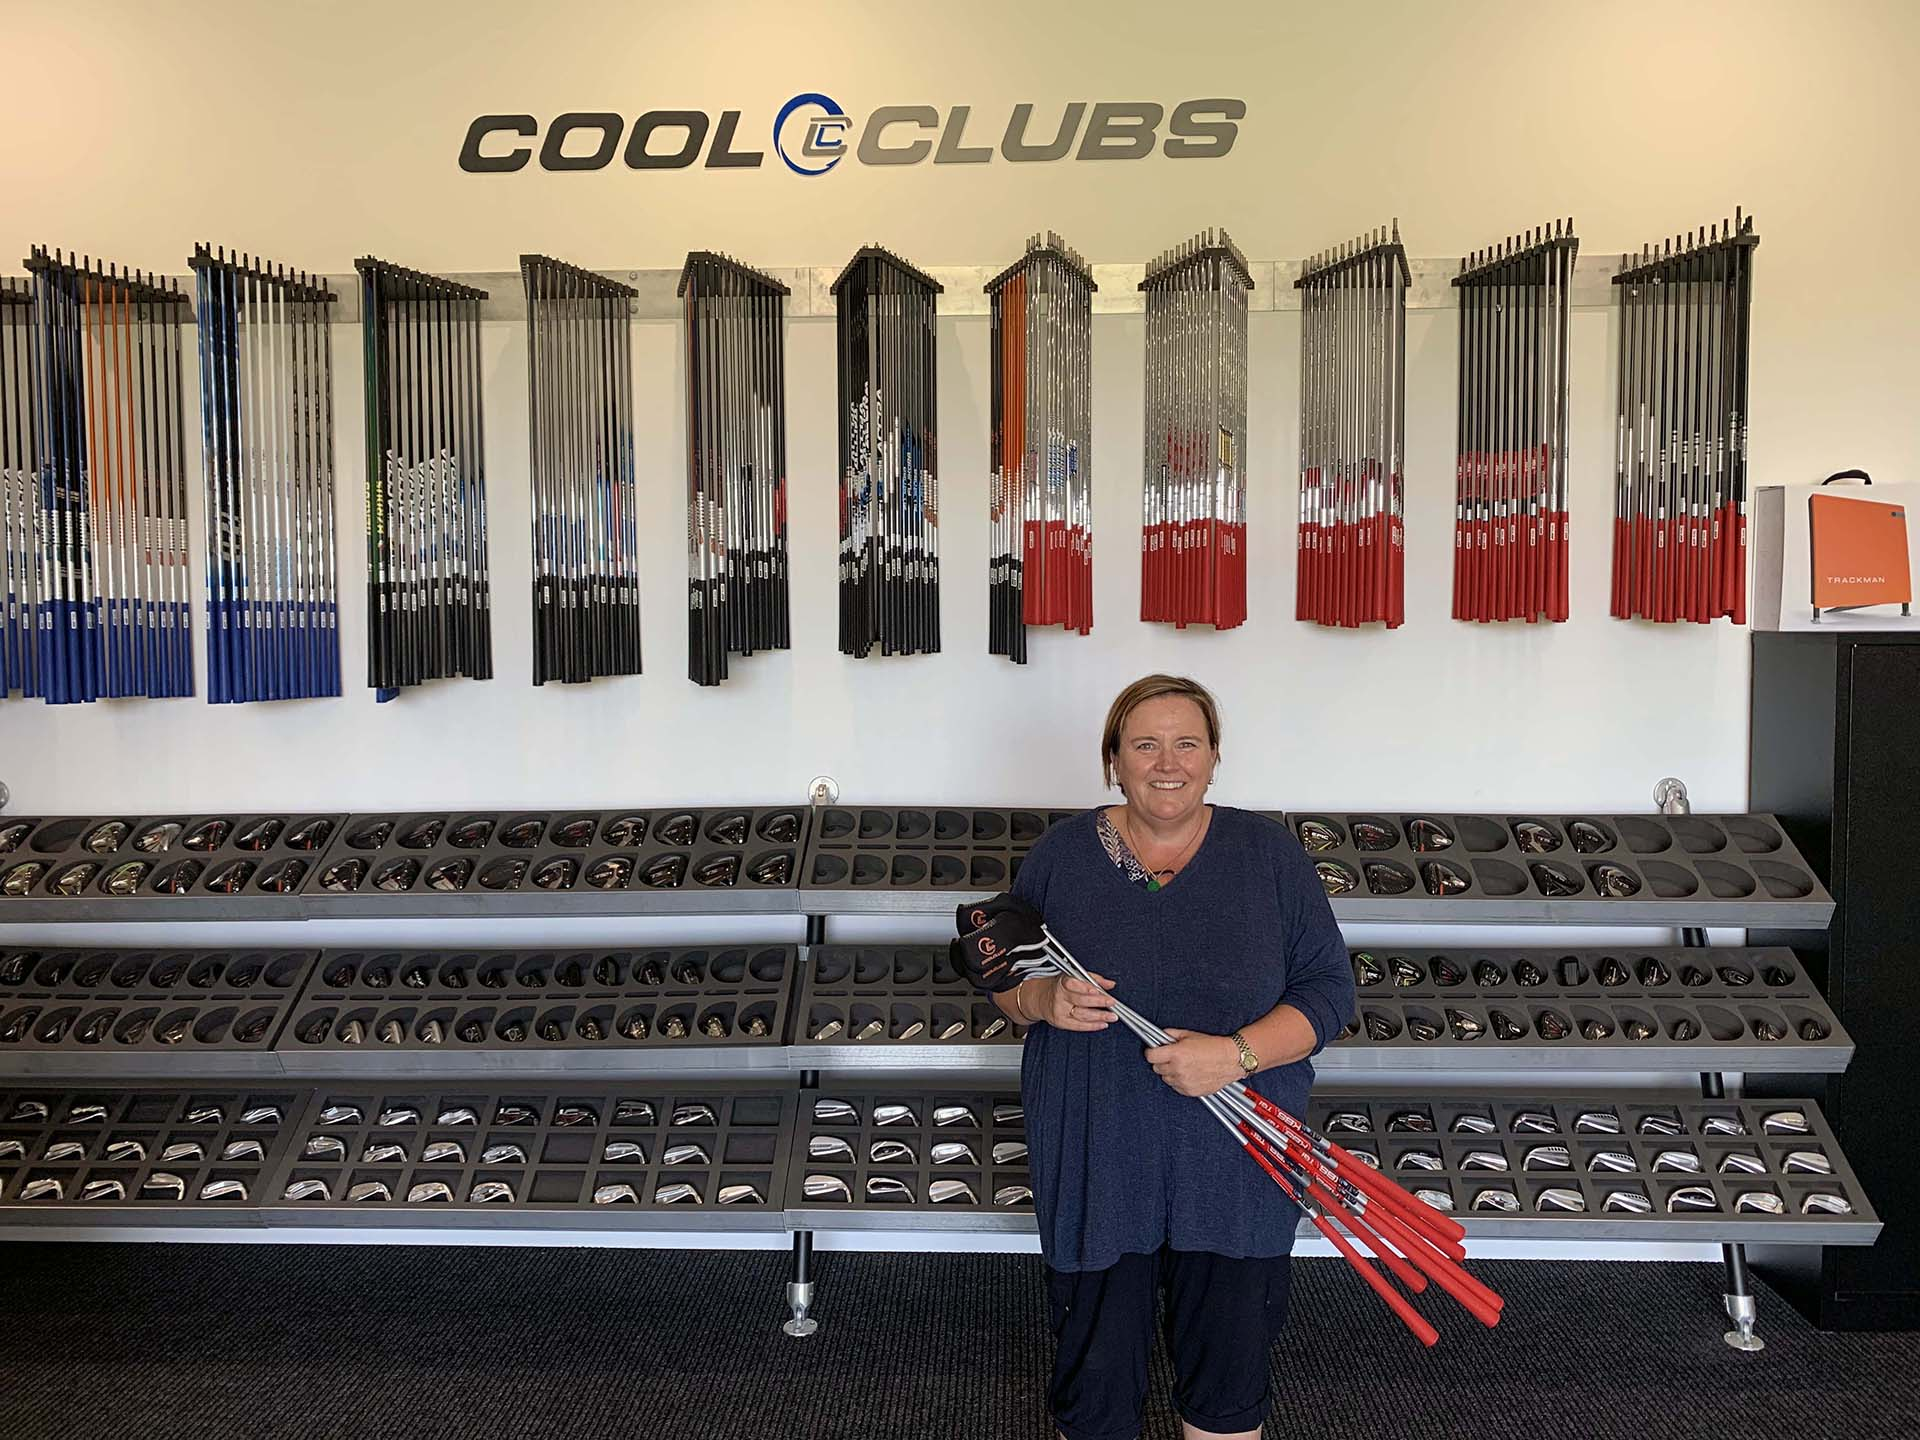 jo-anne picking up her clubs at Cool Clubs Melbouren